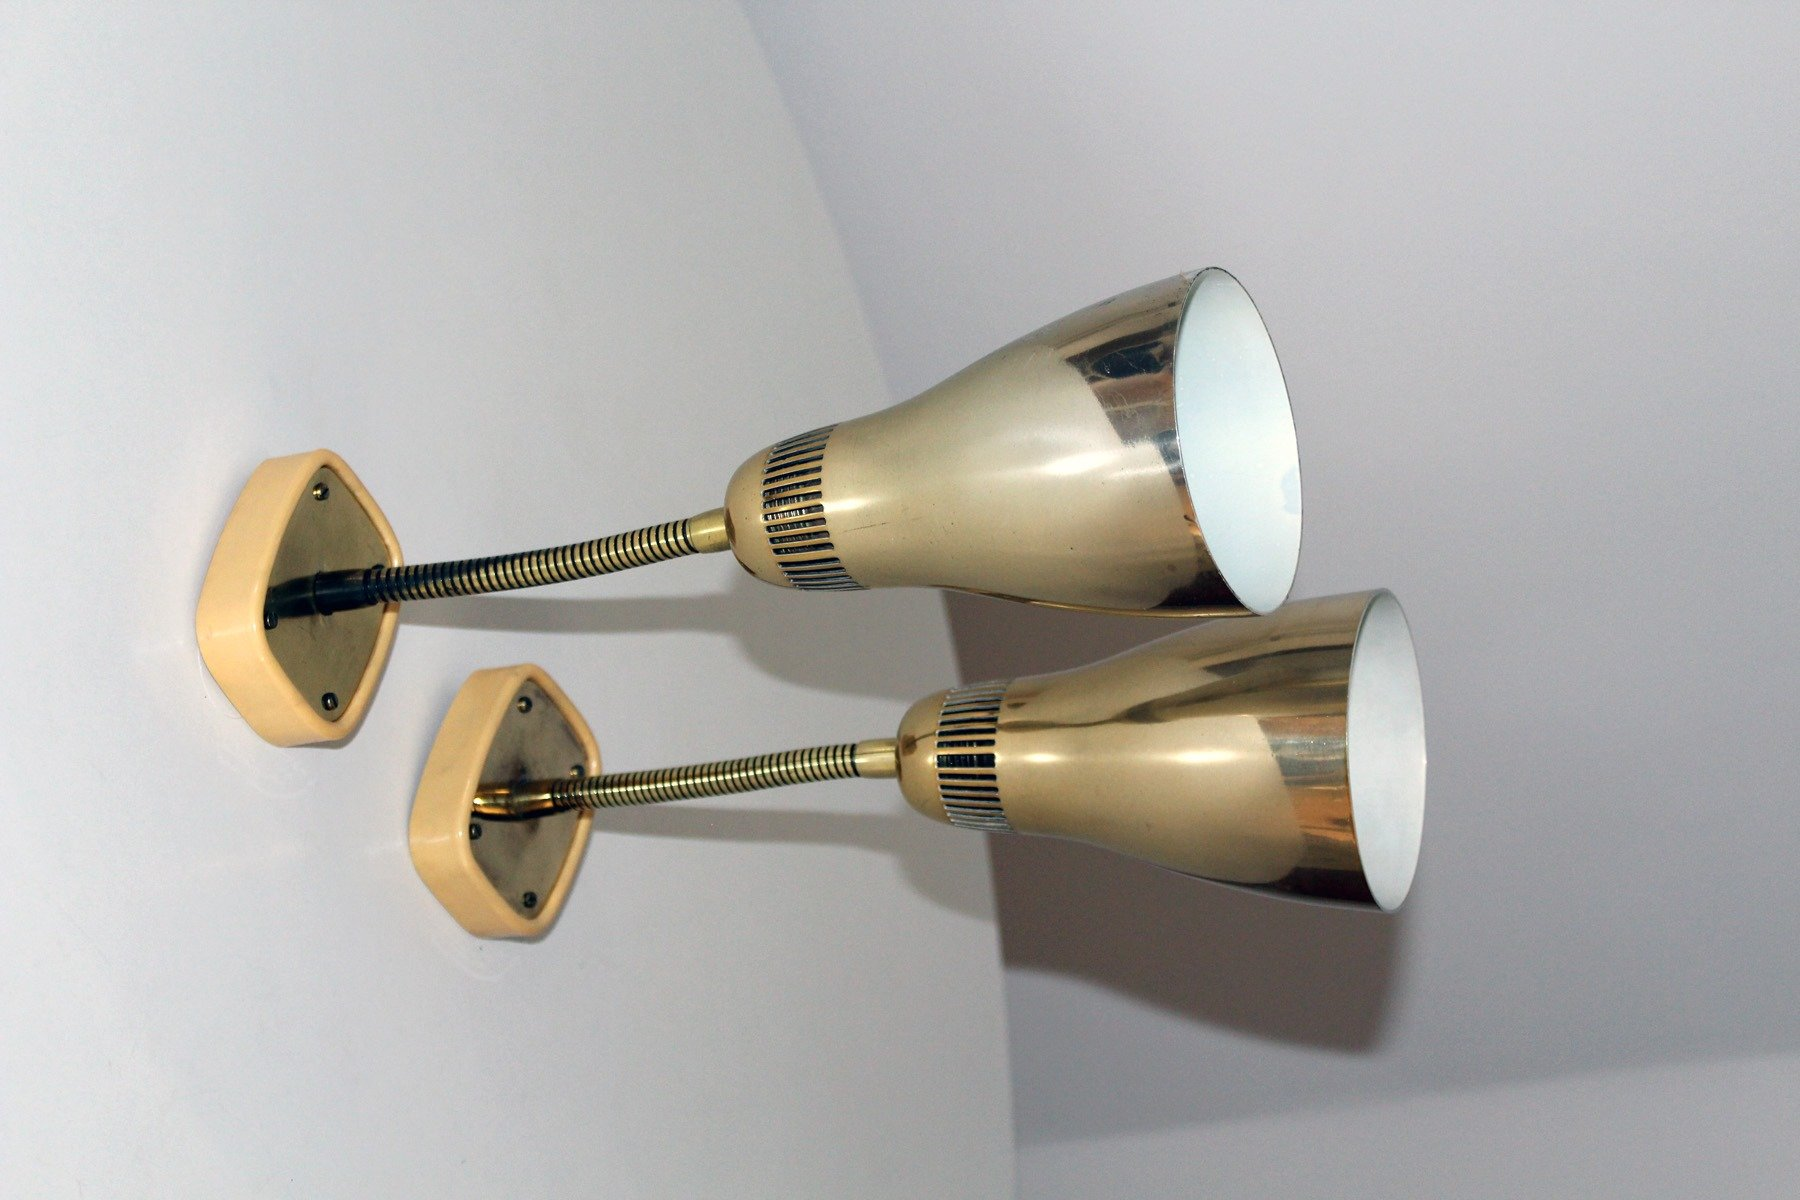 Wall Lights With Adjustable Arms : Wall Lights with Adjustable Arm from Rupert Nikoll, 1950s, Set of 2 for sale at Pamono